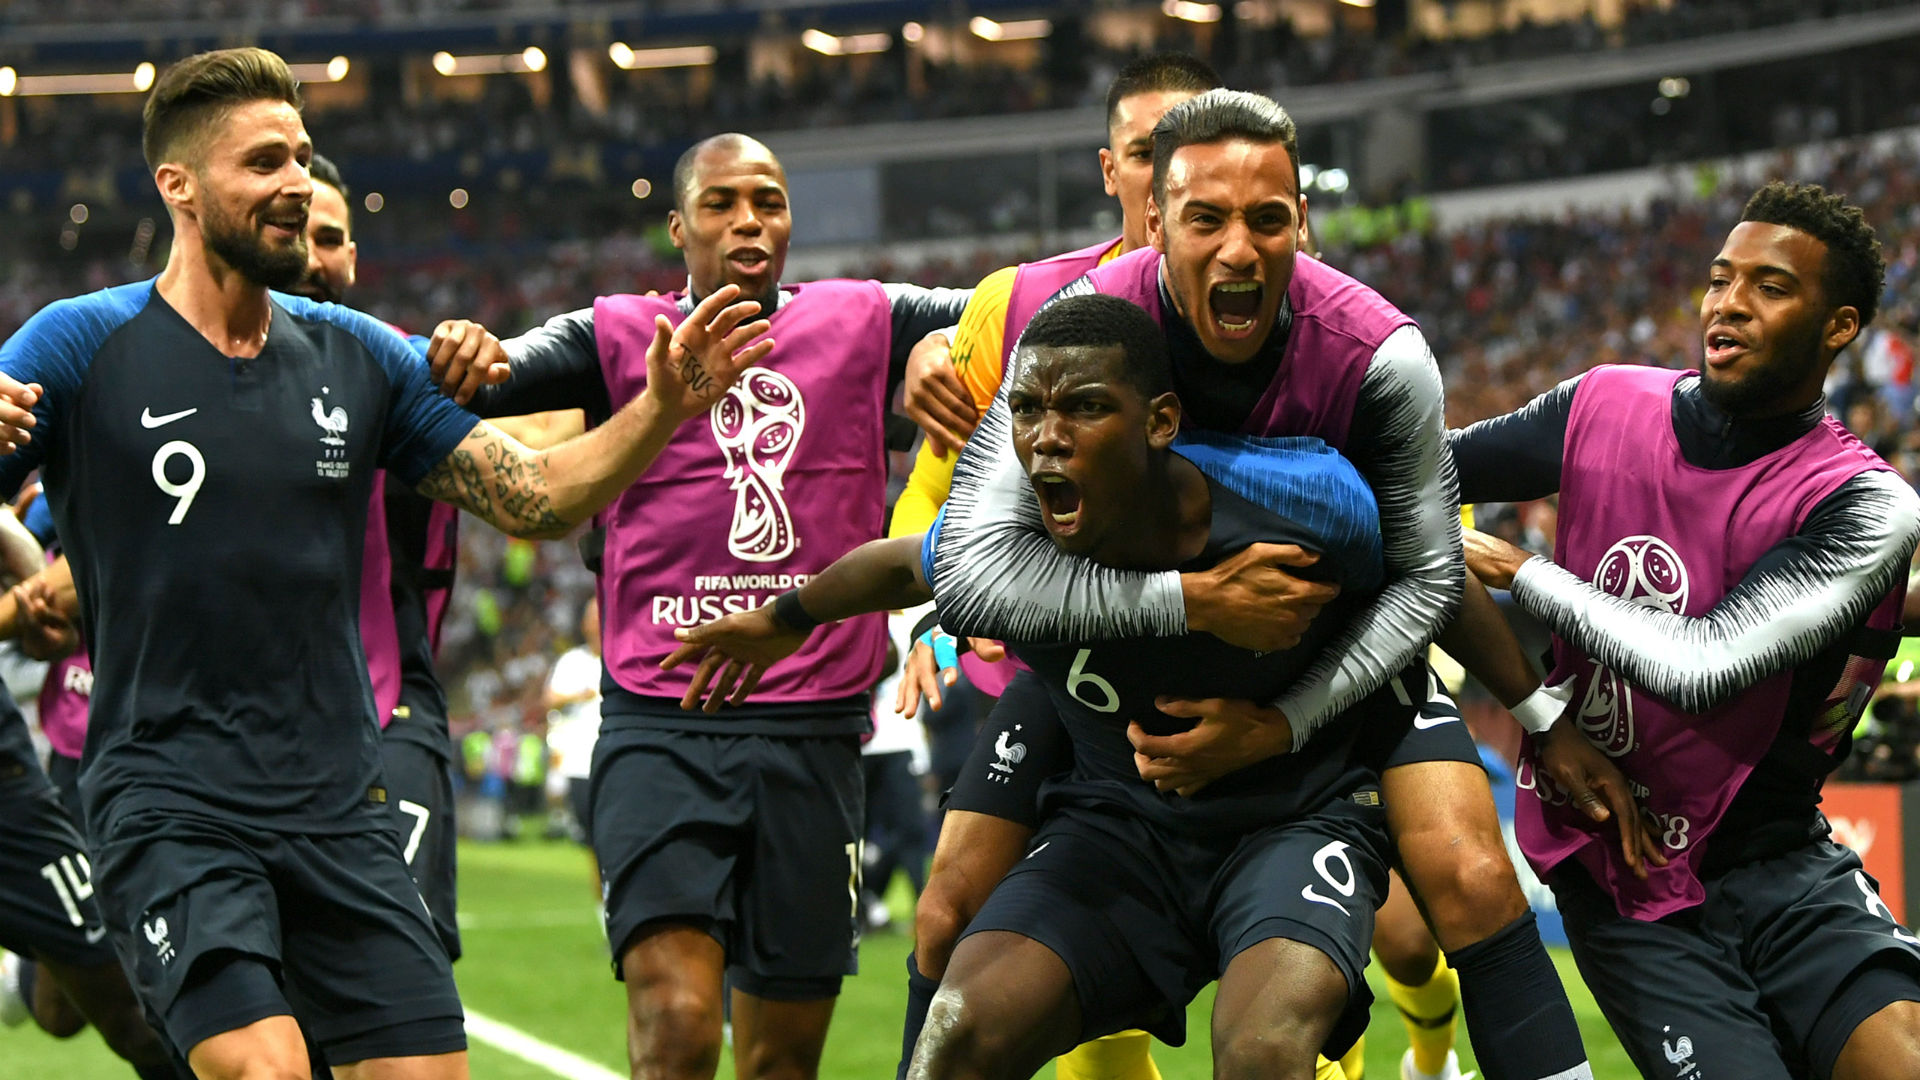 Paul Pogba France Croatia World Cup final 2018